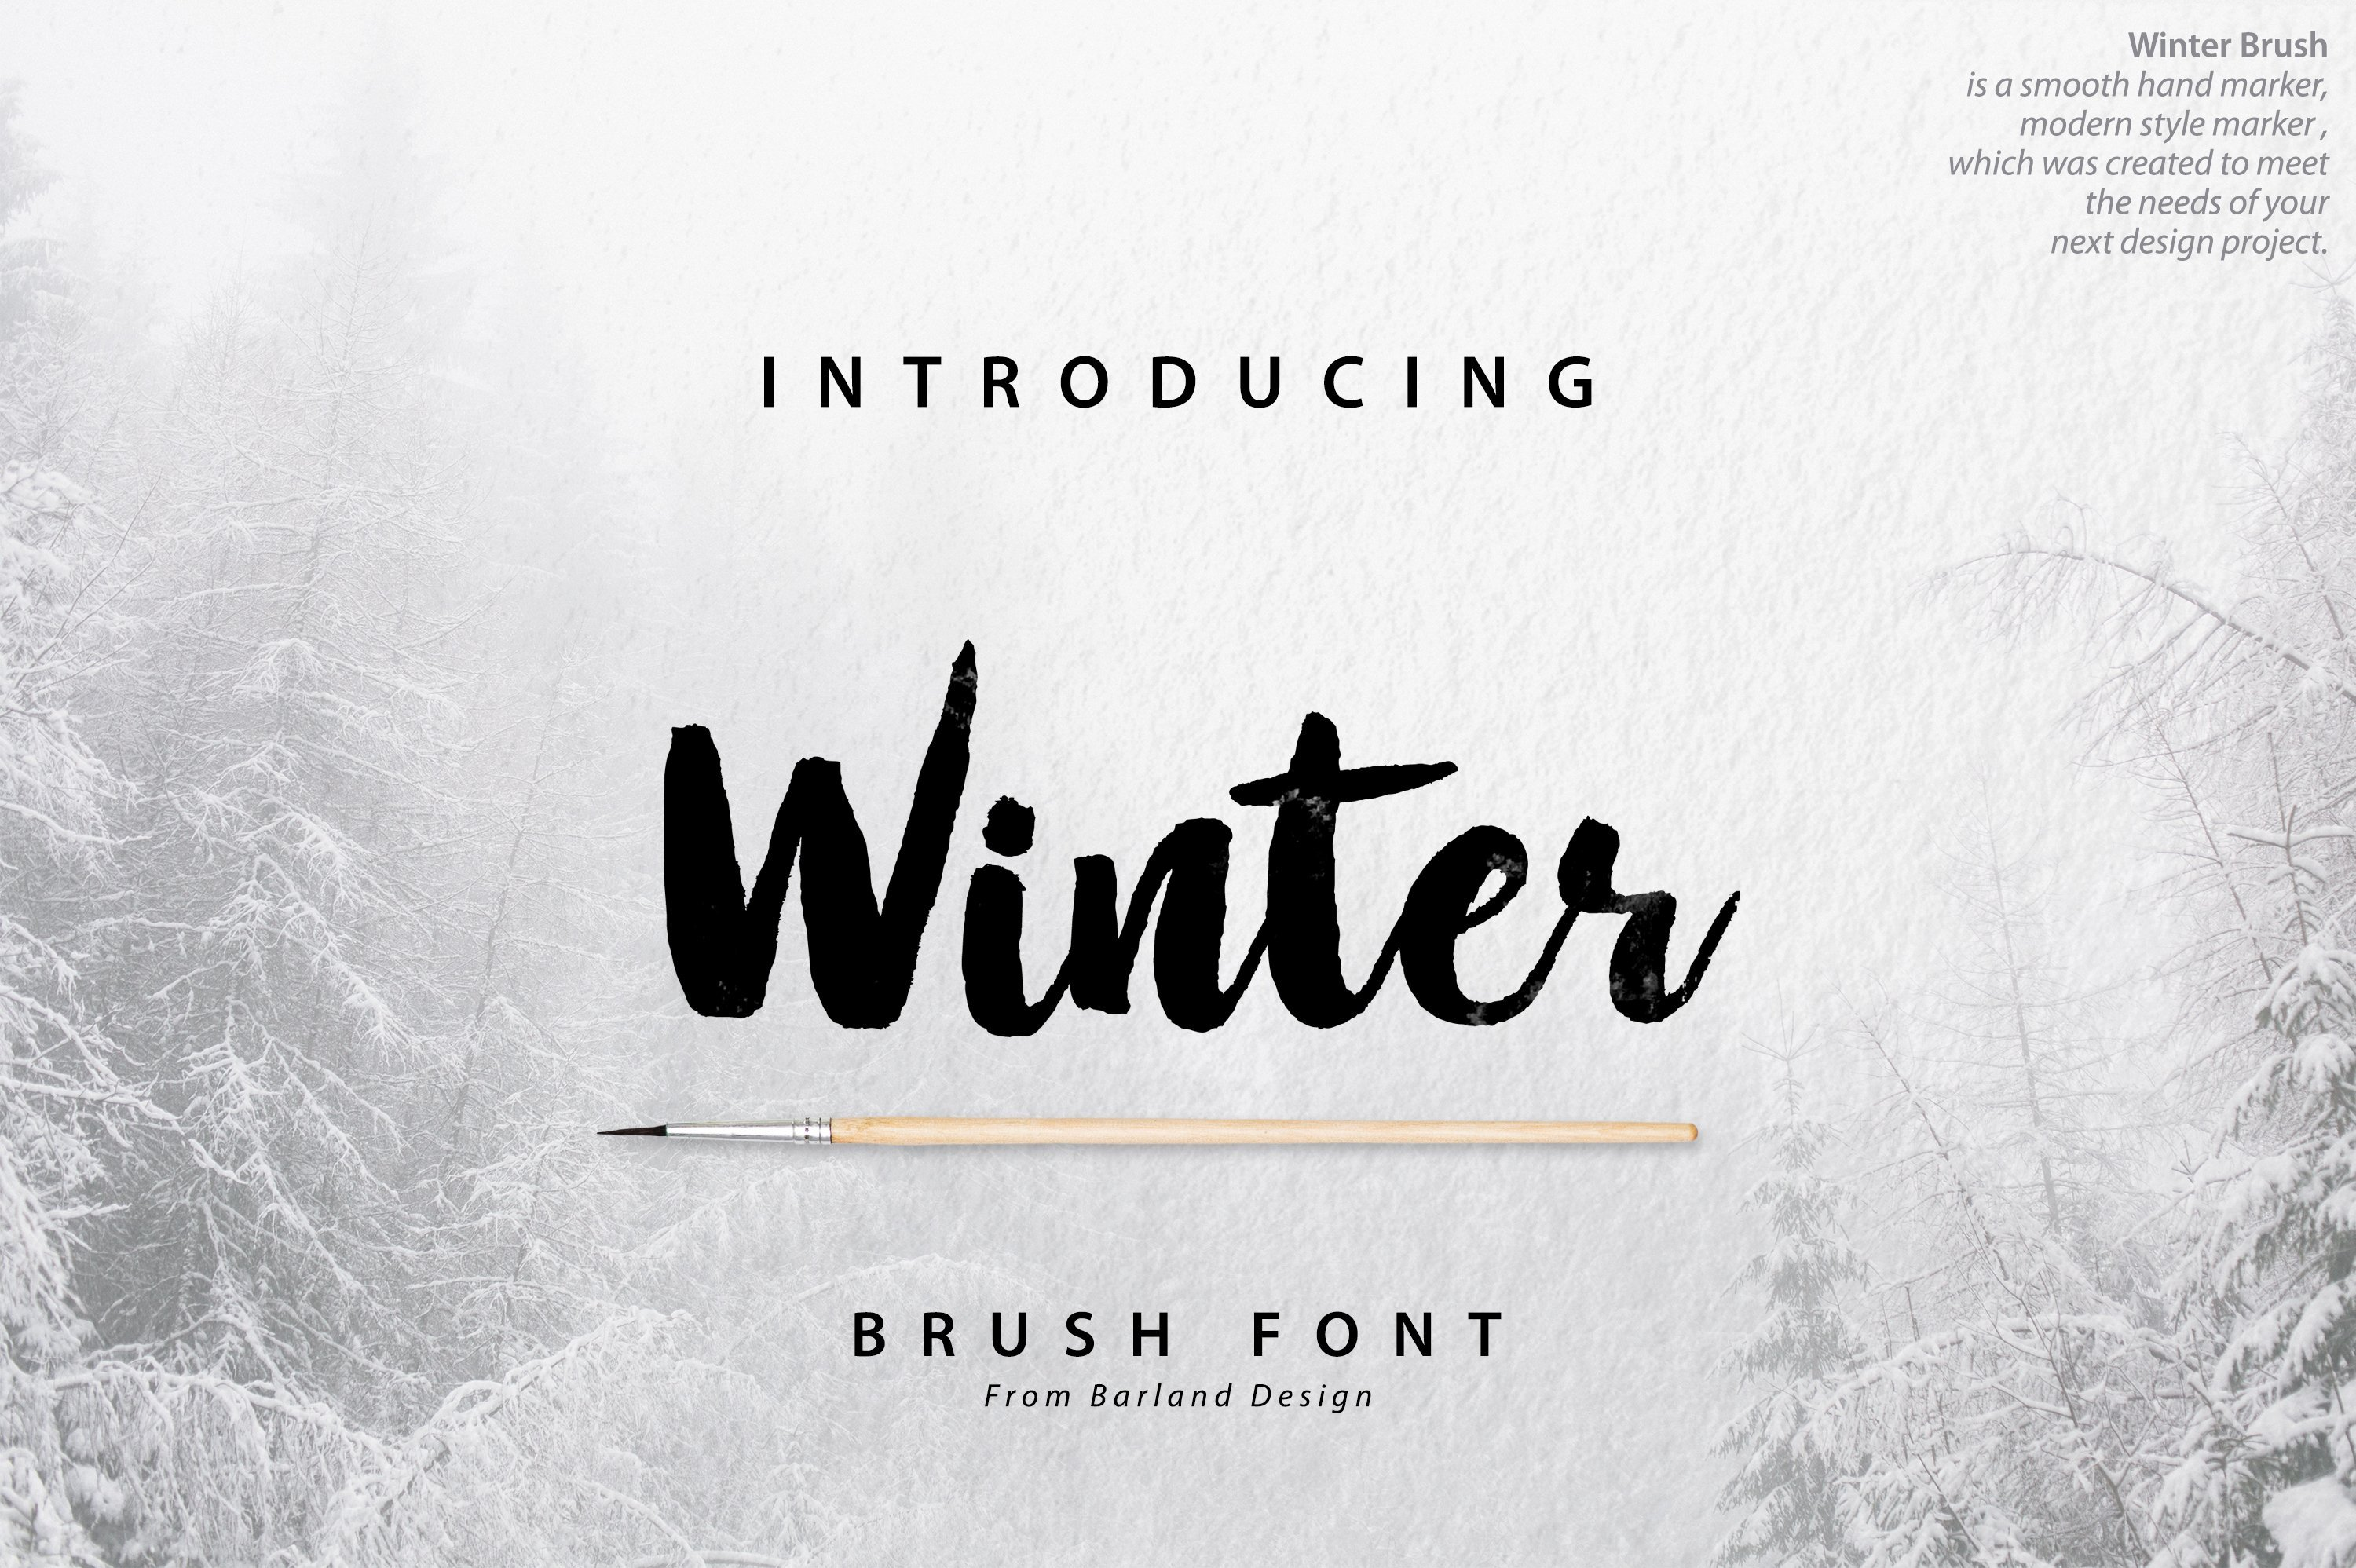 Warm font around a cold winter forest.